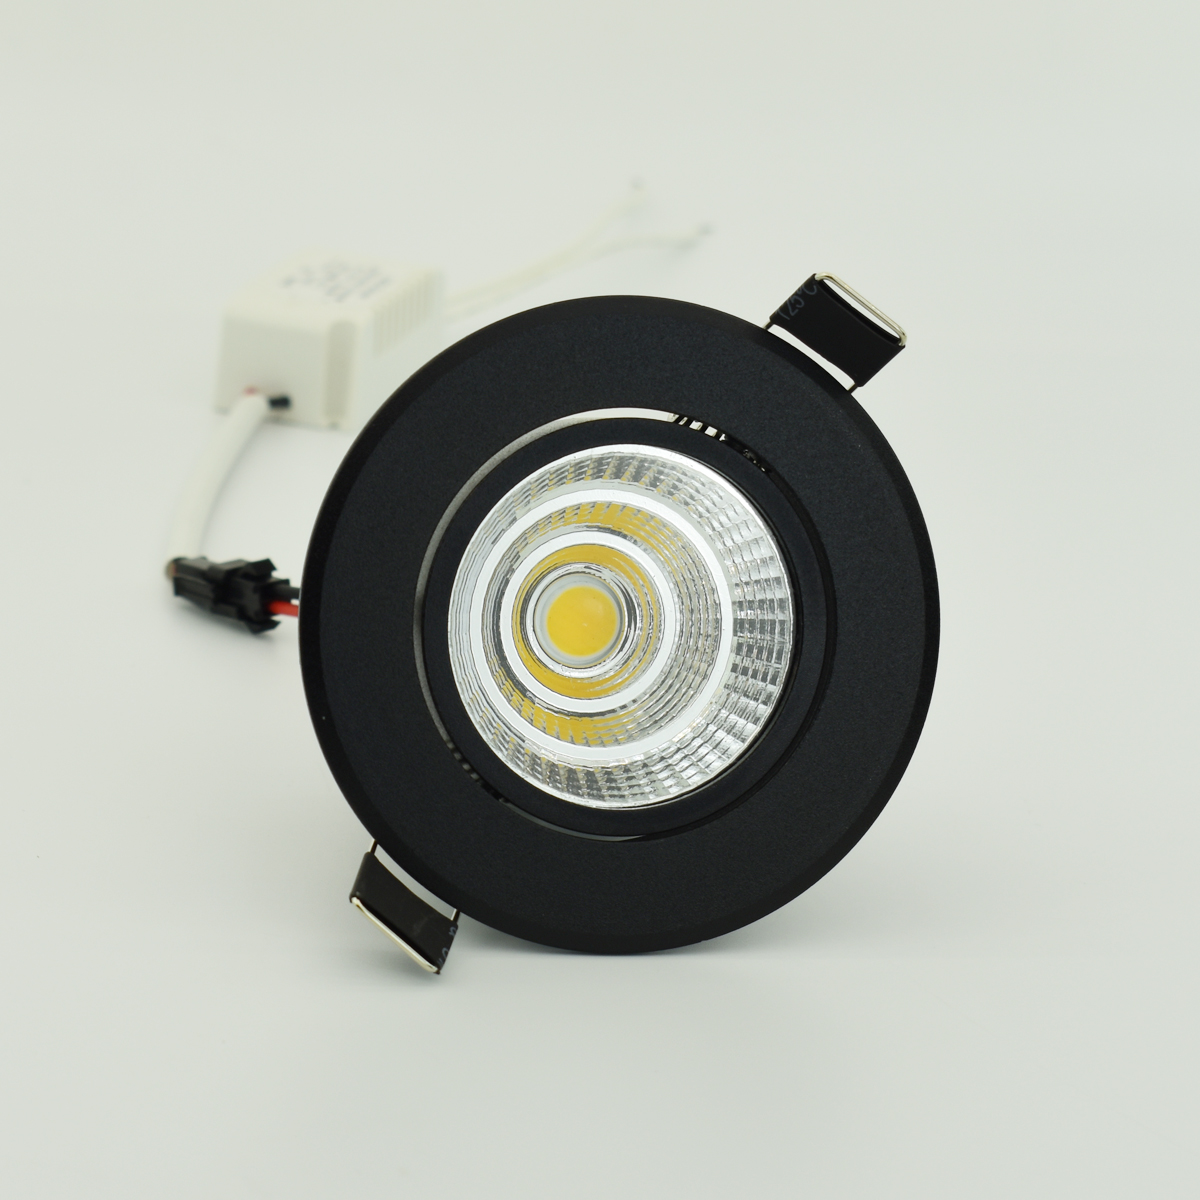 Special Black Led Spot Mini 3W 5W 7W COB LED Downlight Dimmable Recessed Lamp Light Best For Ceiling Home Office Hotel 110V 220V